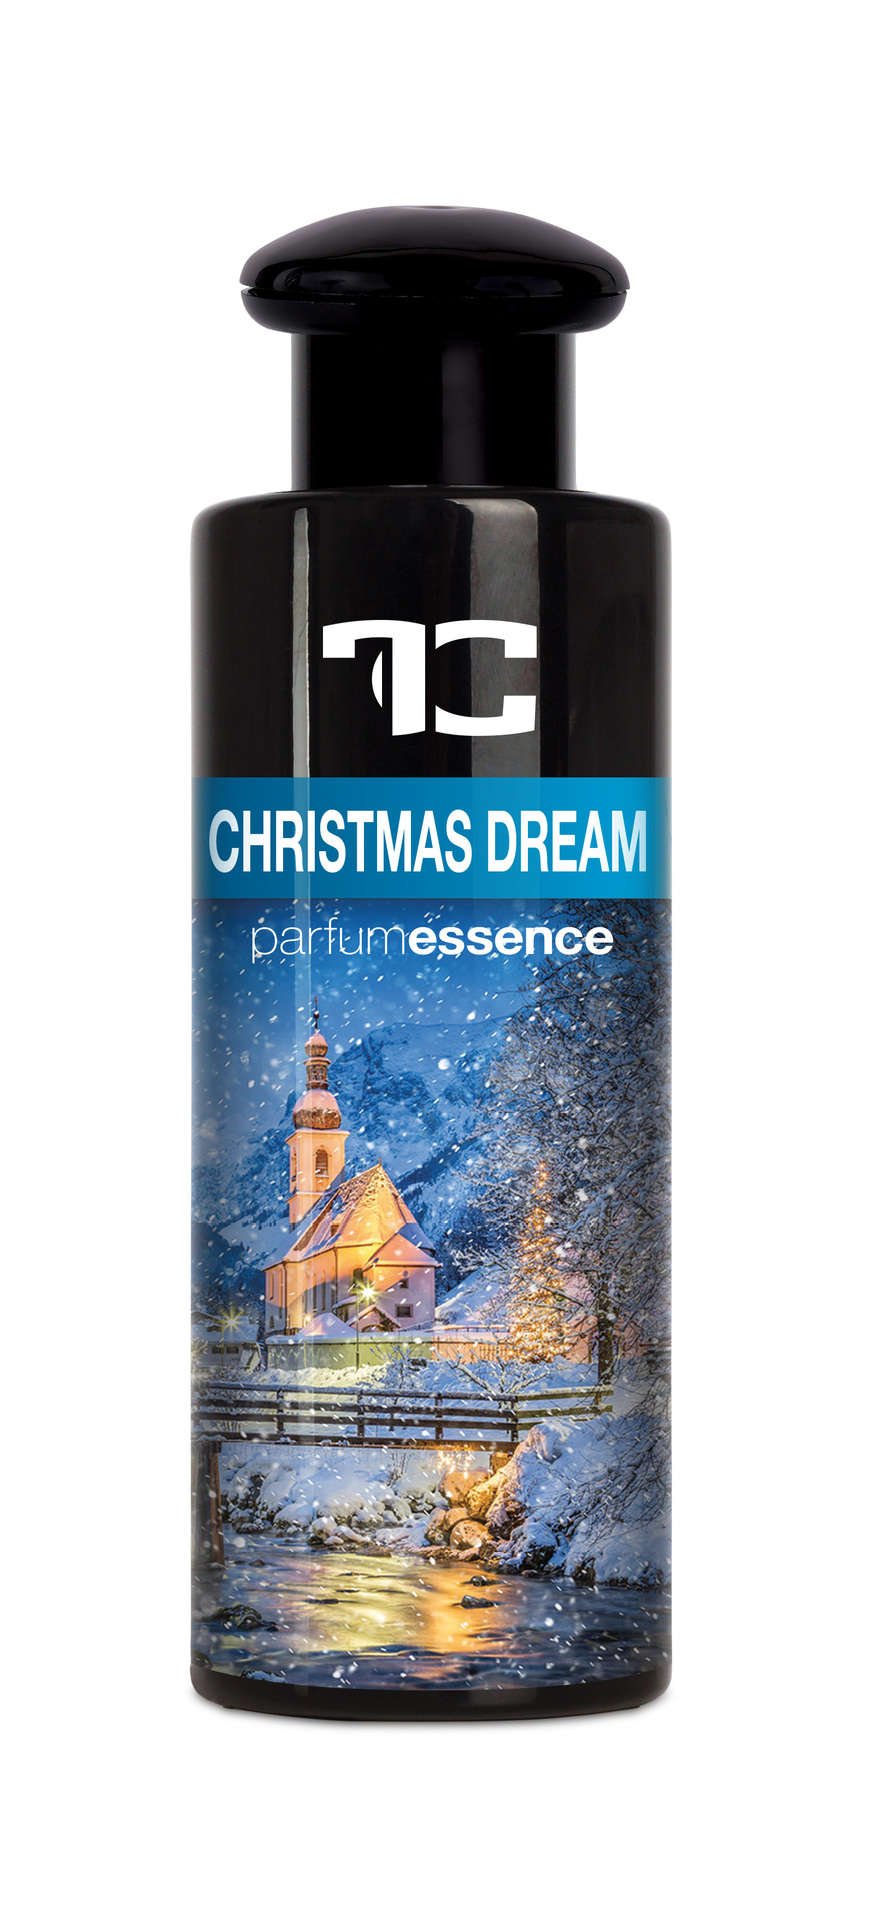 PARFUM ESSENCE, christmas dream, vonná esence